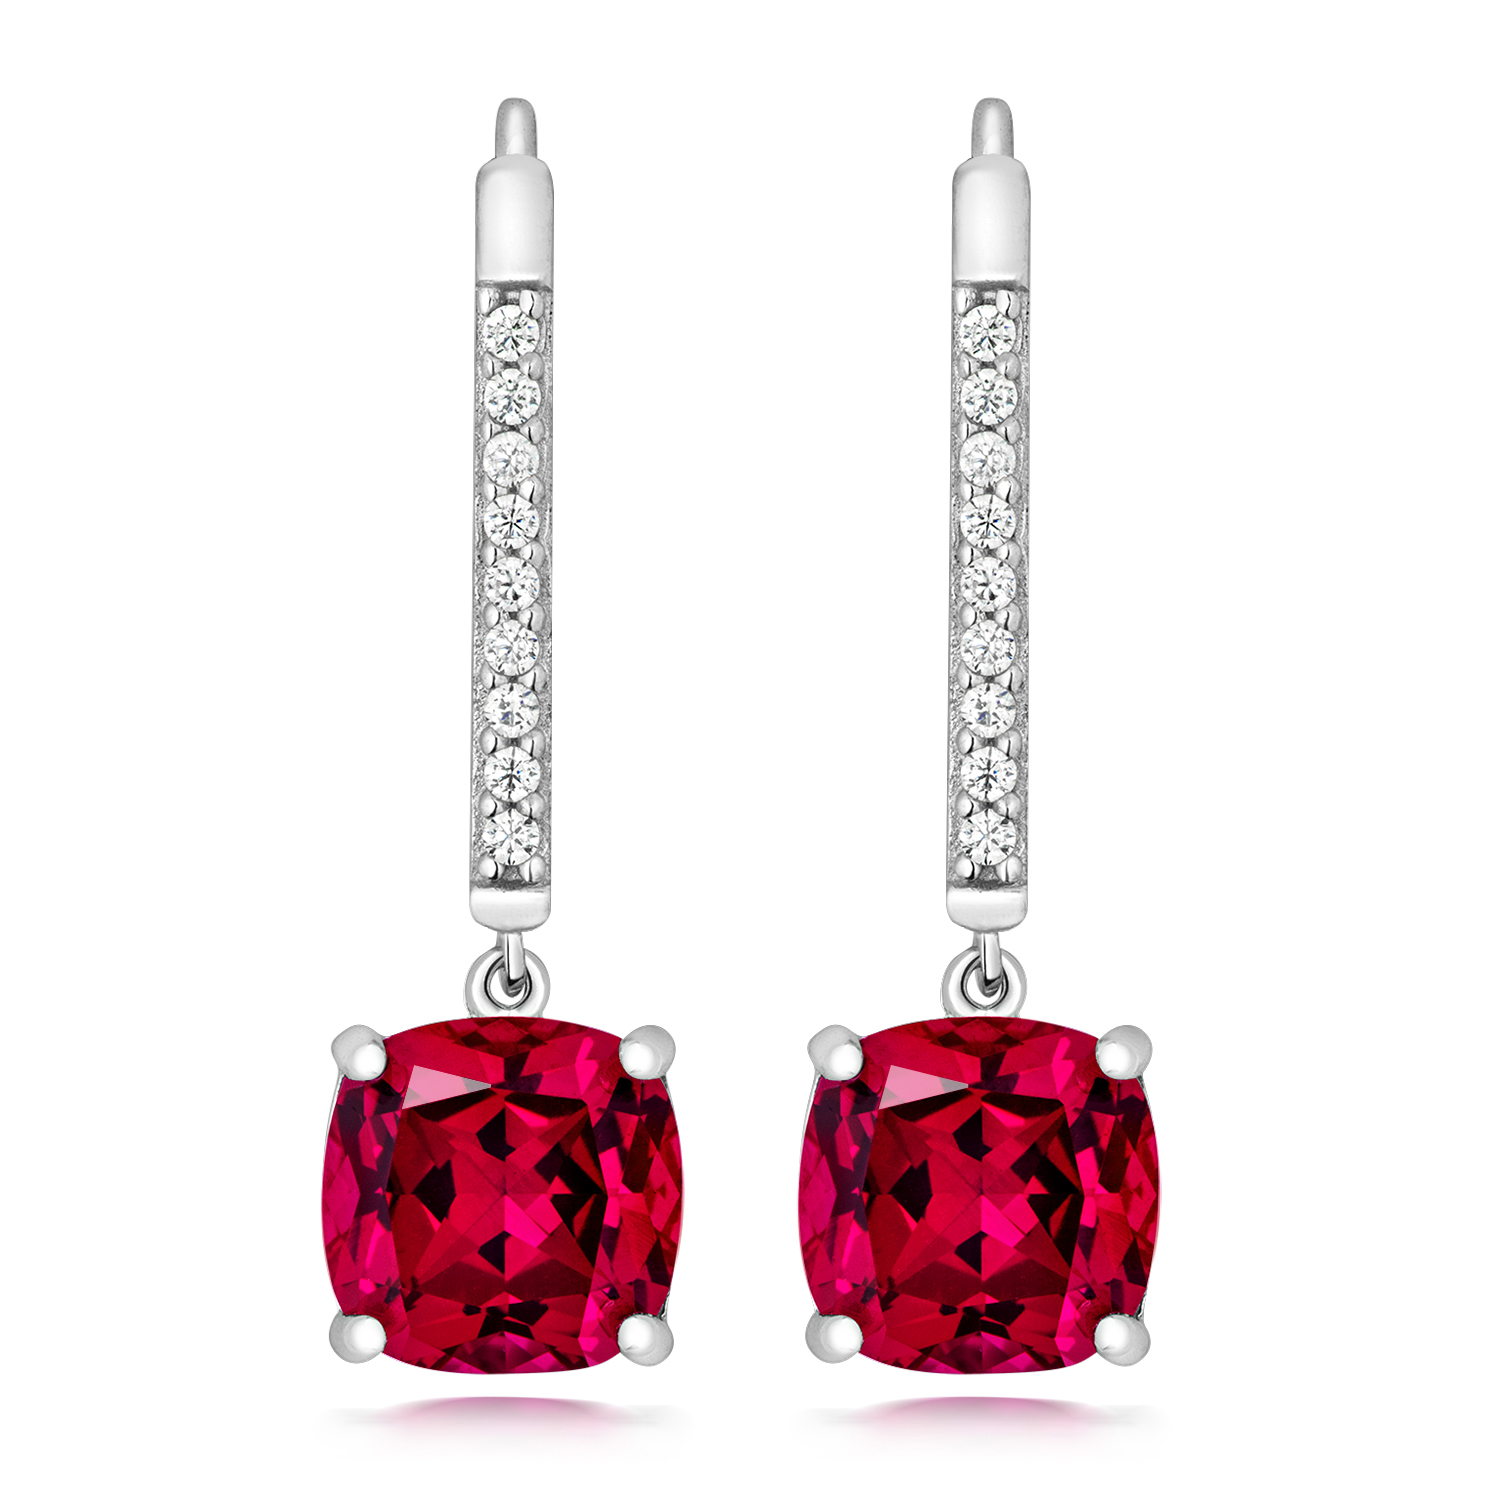 d656b98a0 Silver and rhodium plated cubic zirconia drop earrings with a red ...